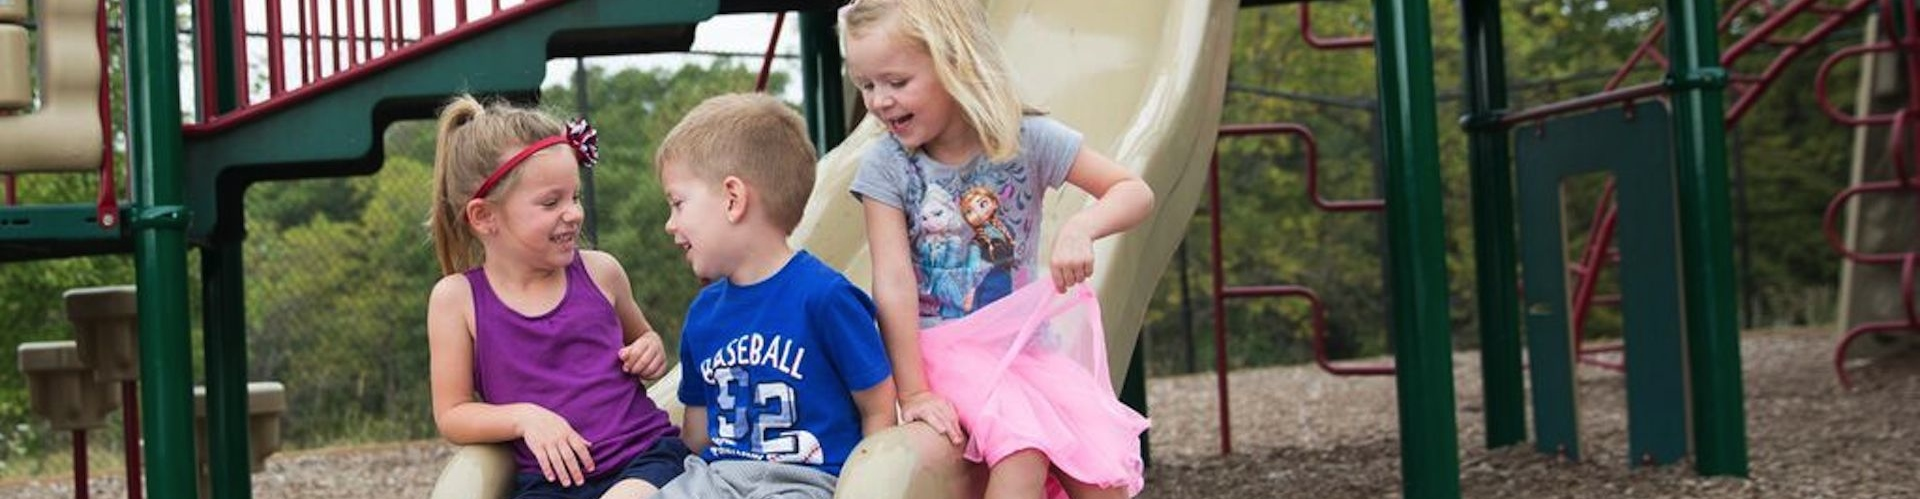 Des Moines Christian School Preschool Students at Recess